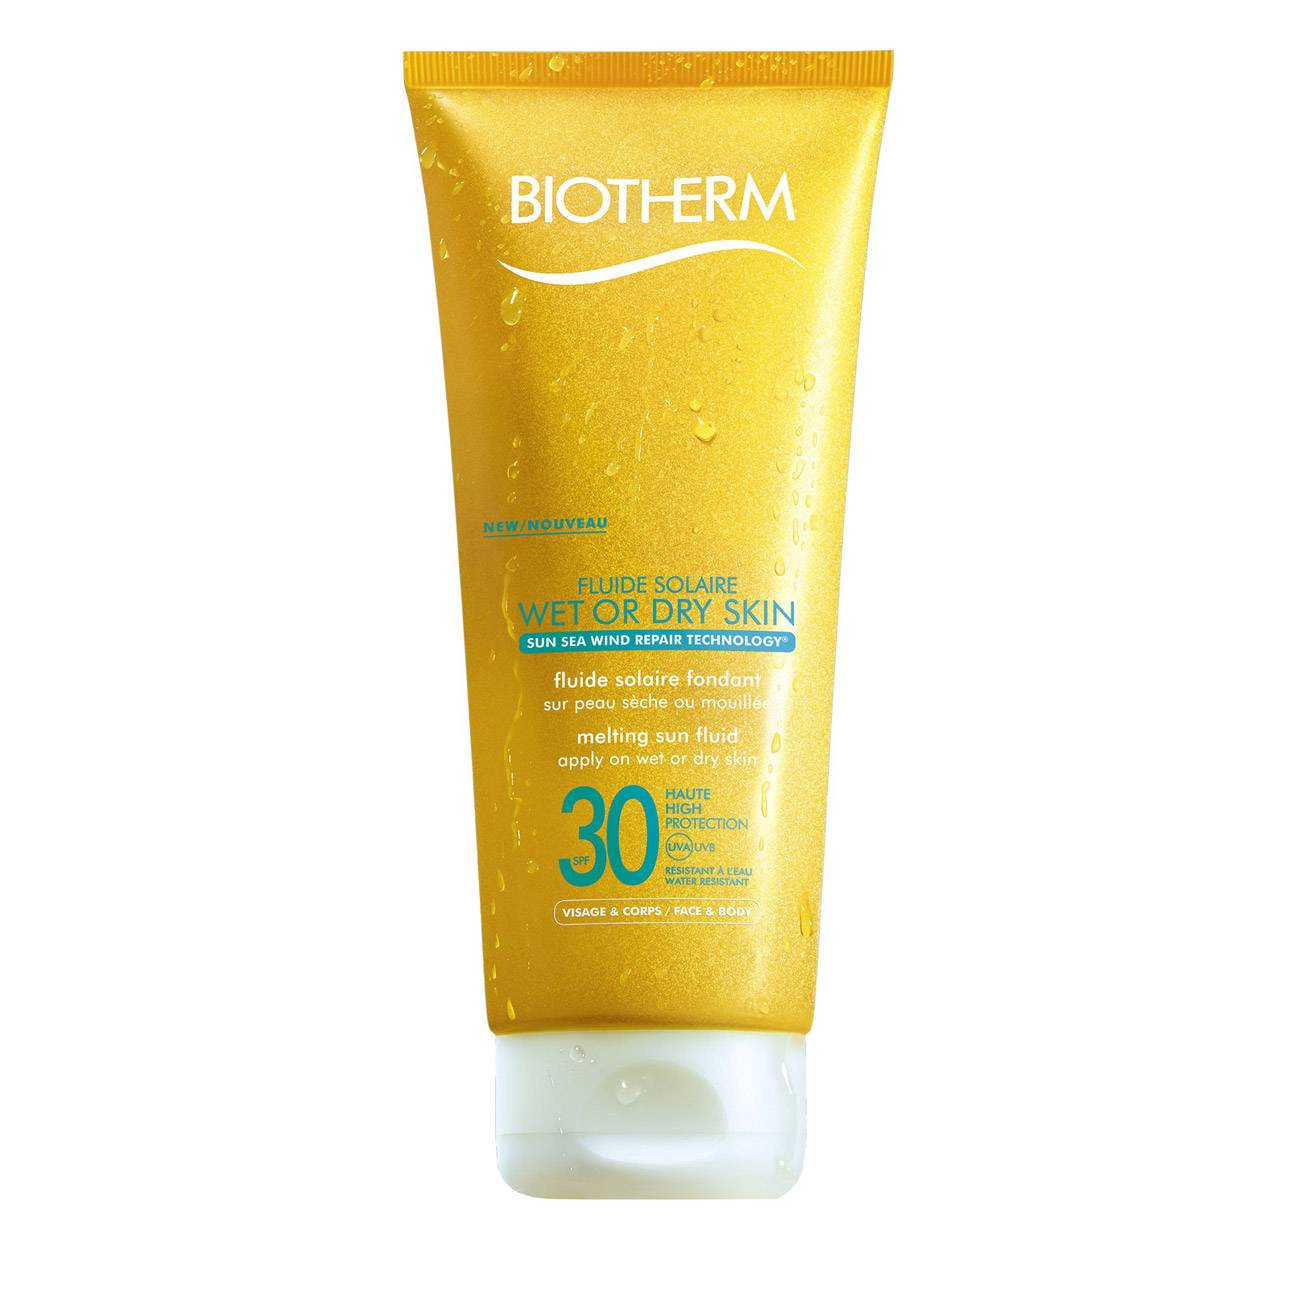 BODY FLUIDE SOLAIRE WET OR DRY SKIN 200ml poza